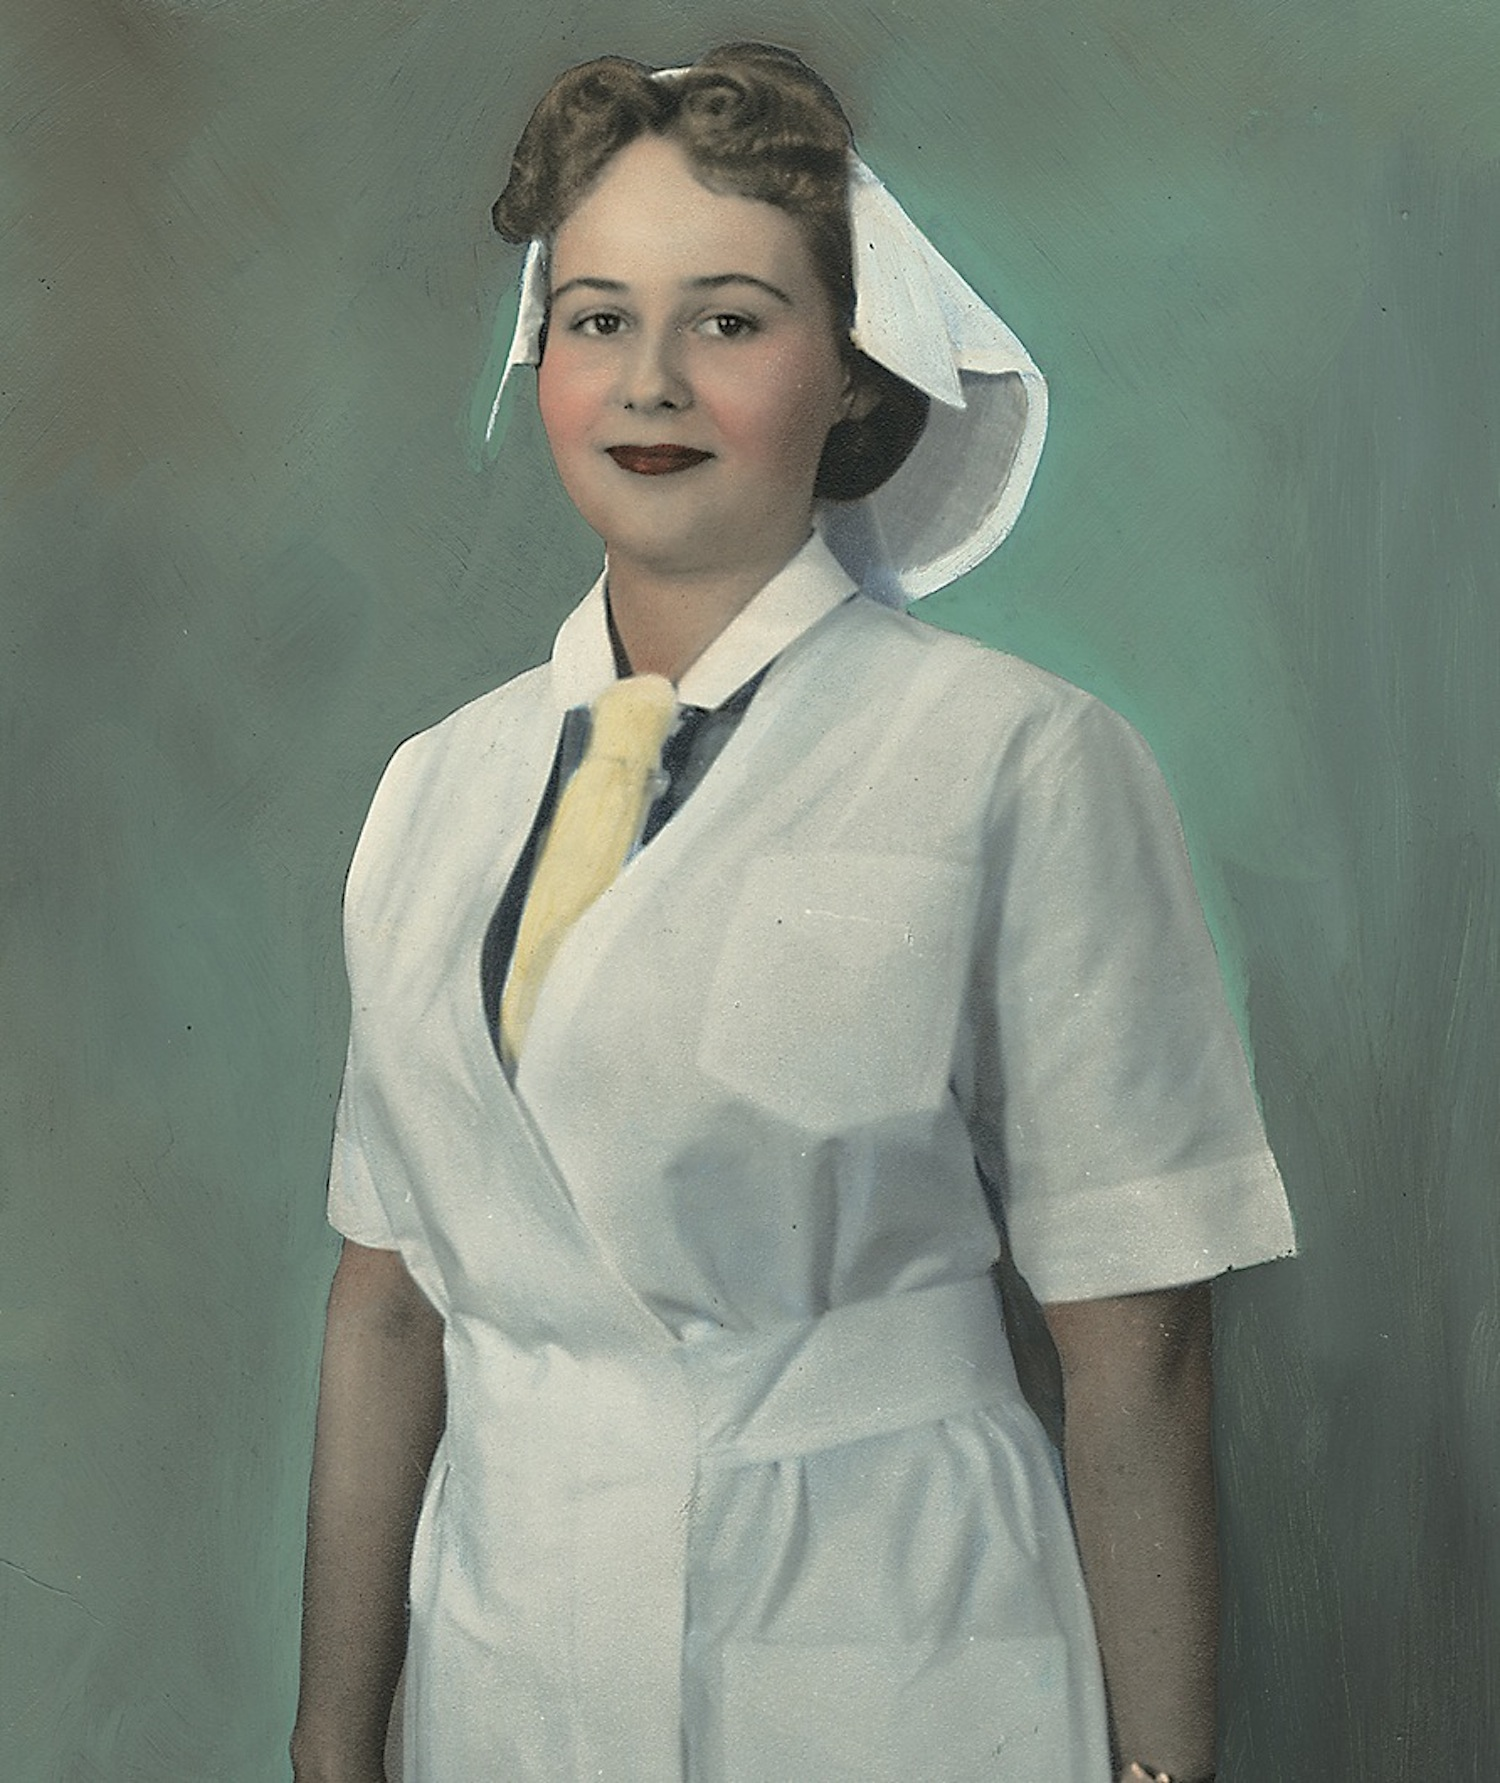 Nurse wearing uniform from Denmark